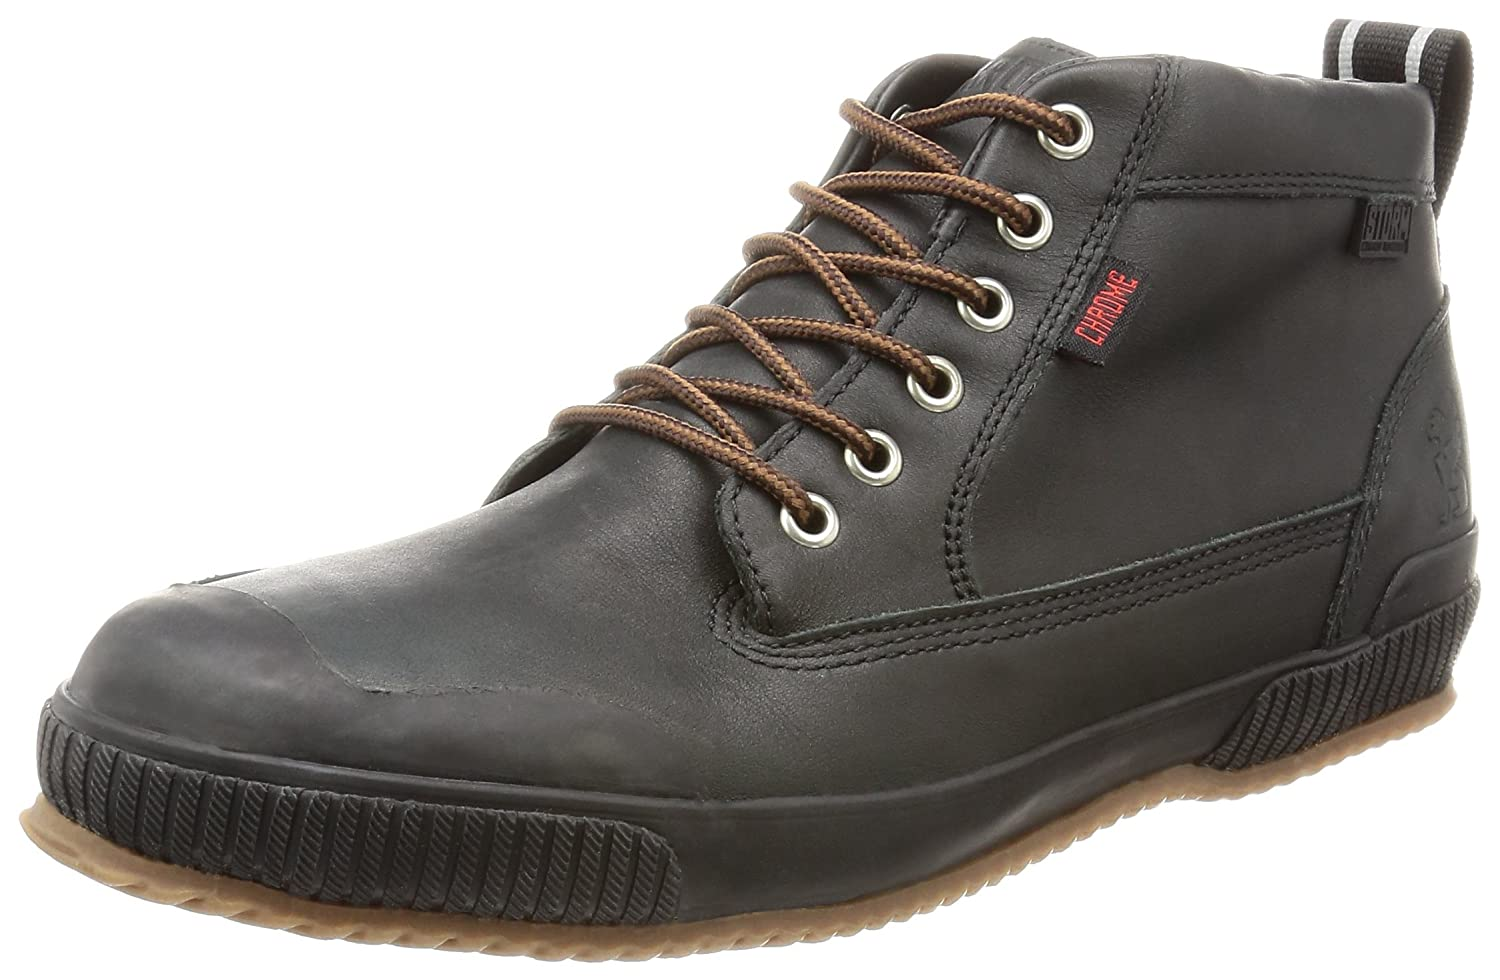 Chrome Storm 415 Work Boots - Men's B00AZTY9TY 9  Women /  7.5 Men M US|Black